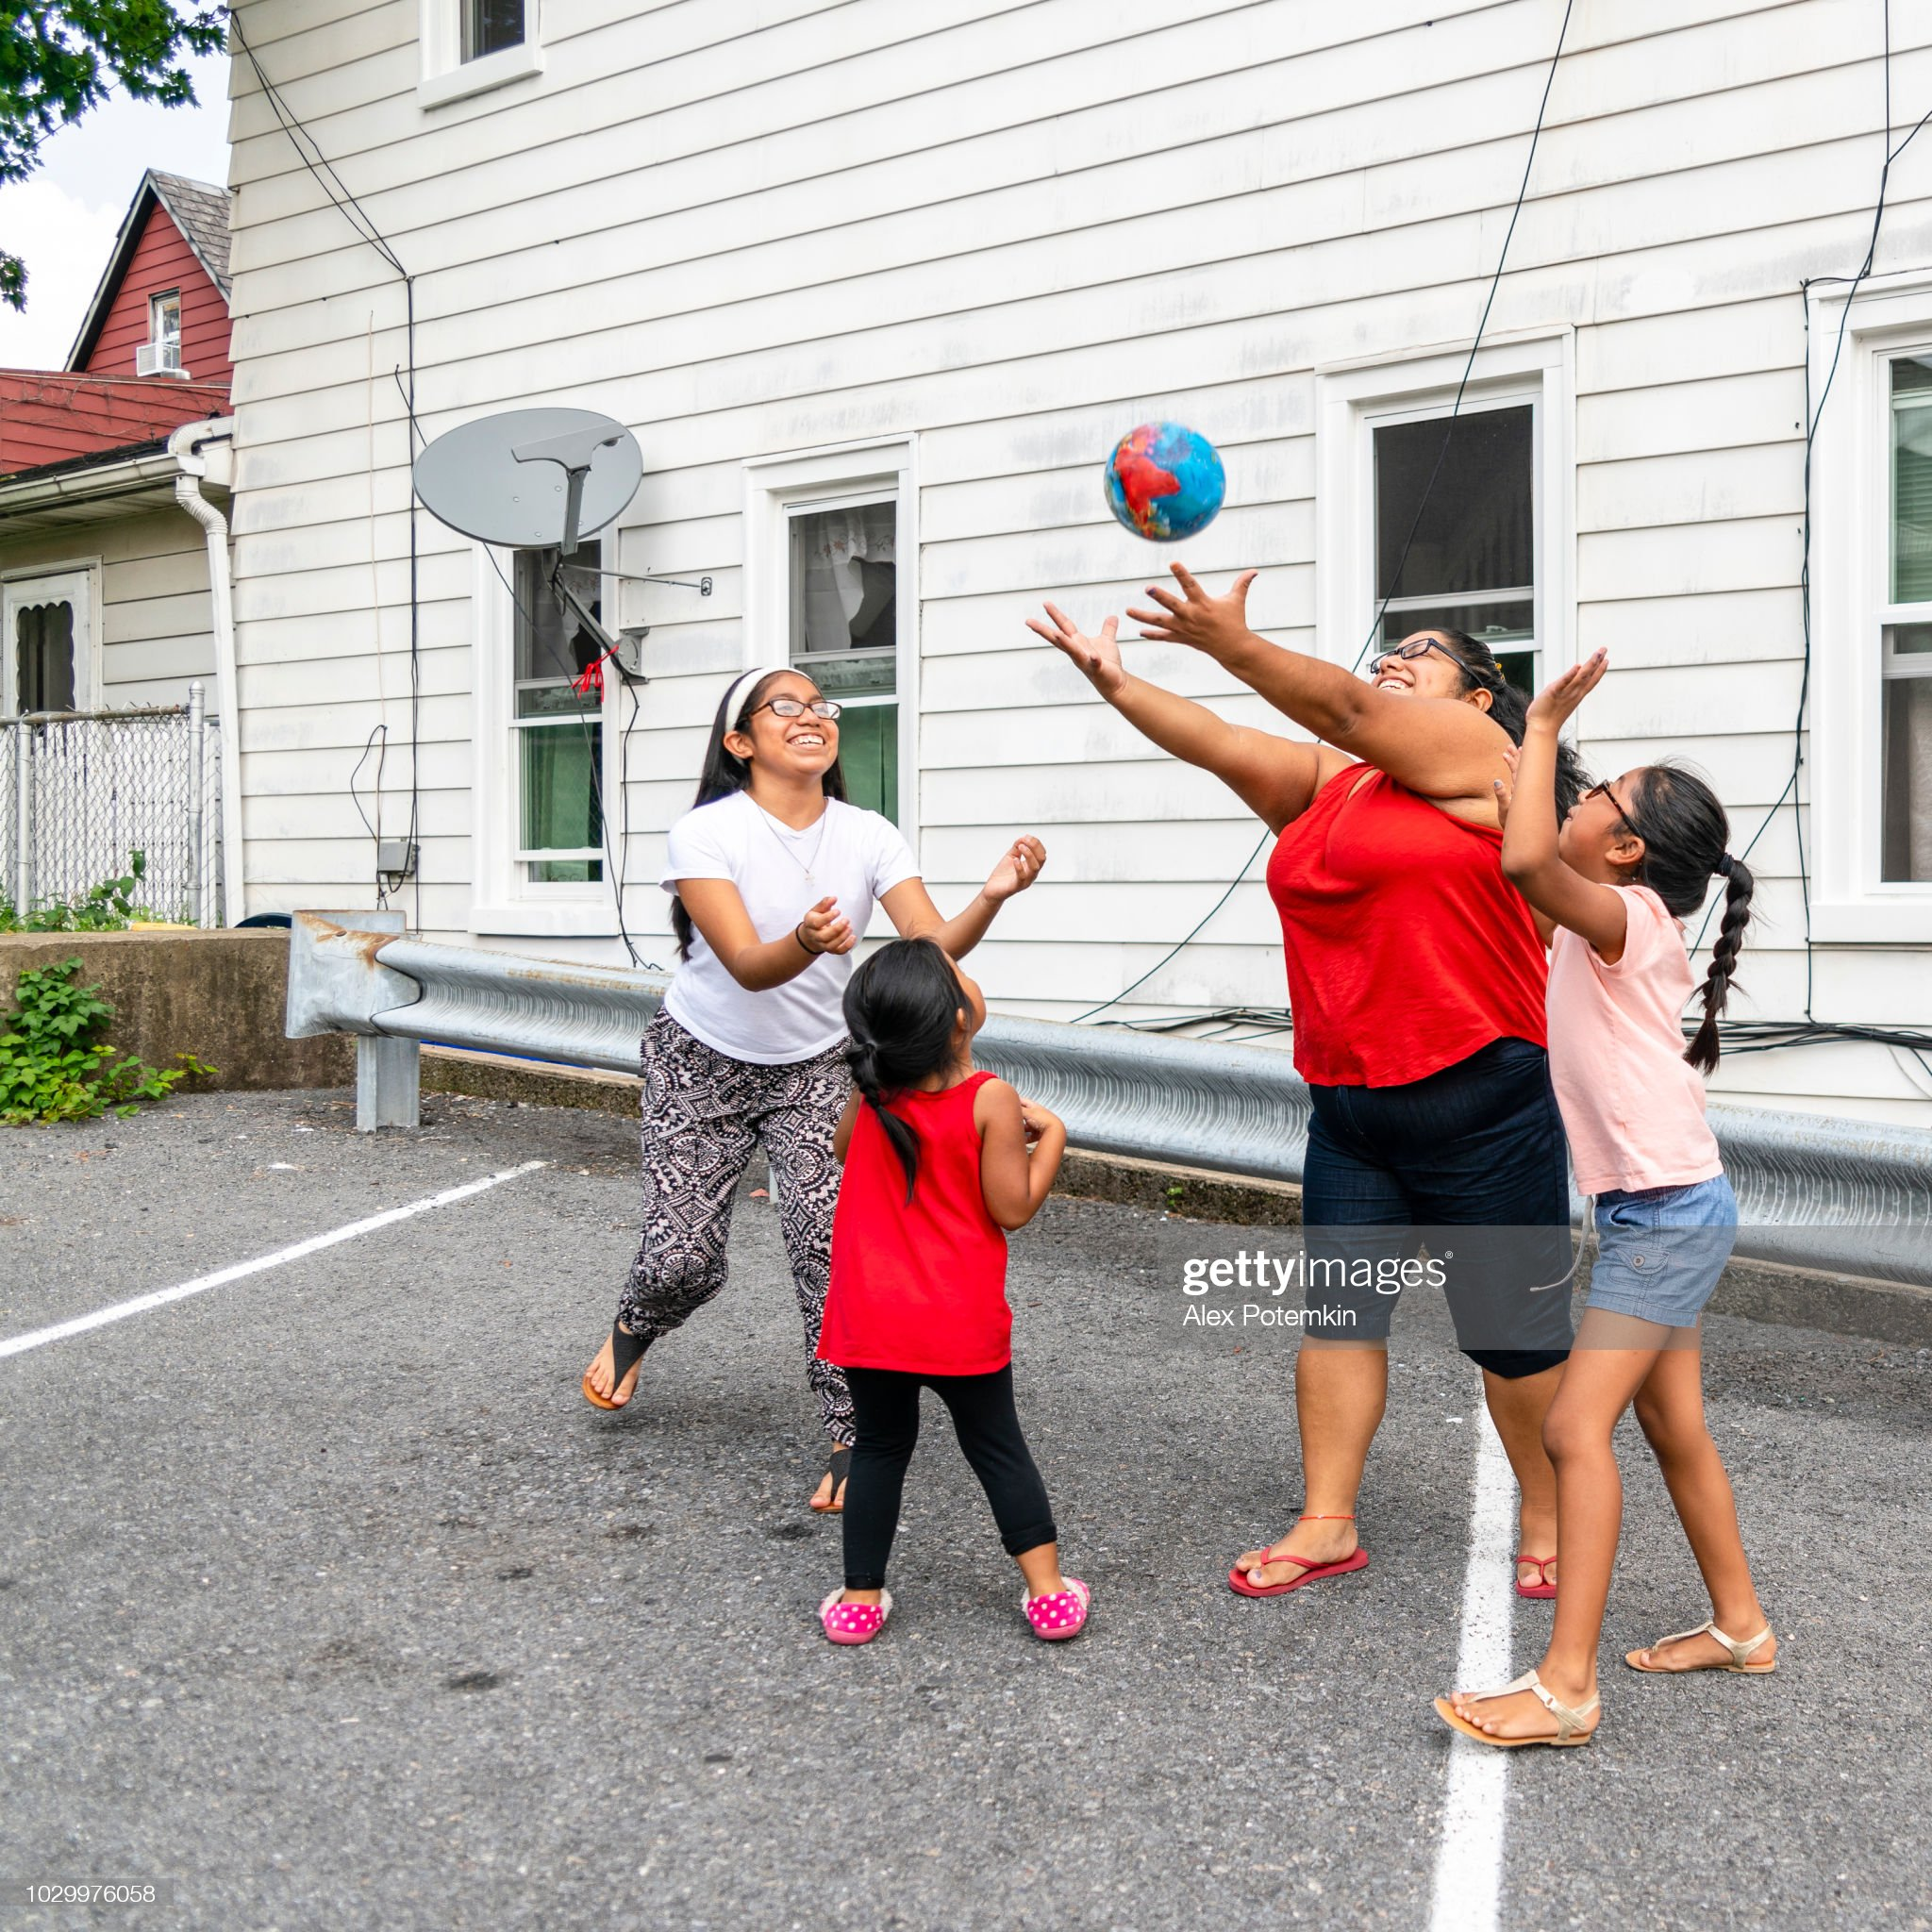 The big happy Latino, Mexican-American family - the mother, body-positive cheerful woman, and kids, girls of different ages - playing with a ball outdoor : Stock Photo